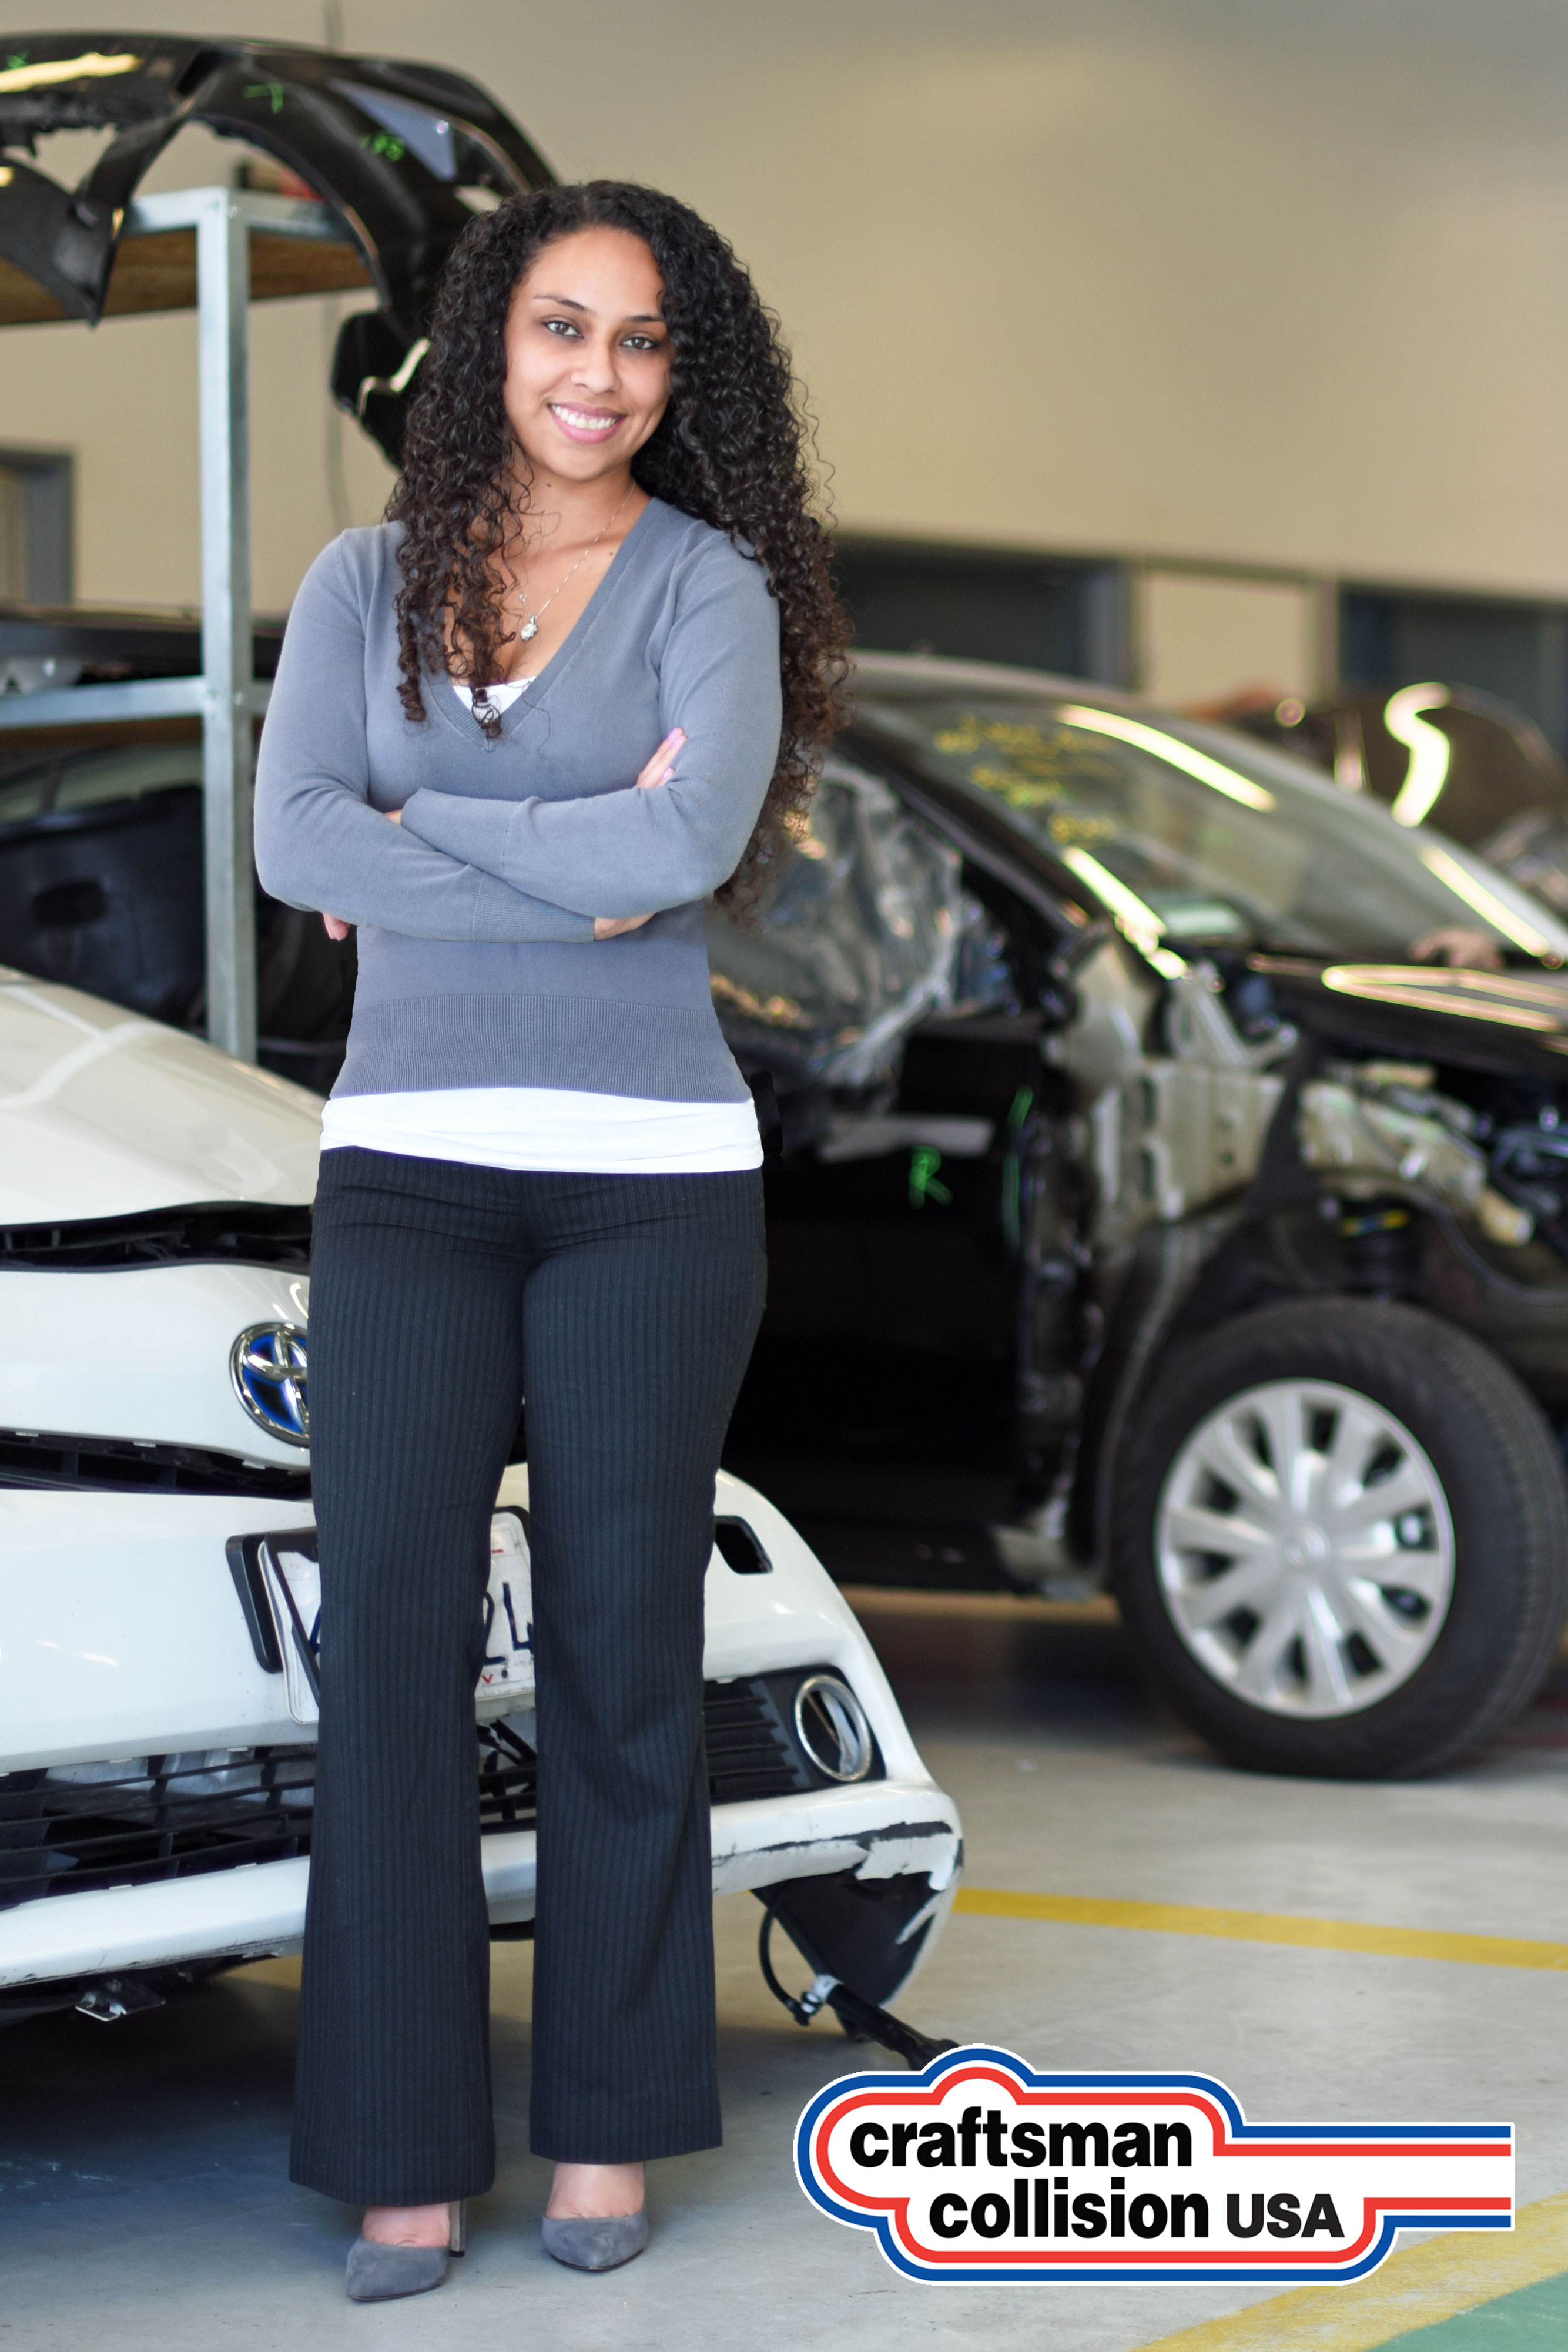 Claudia - Auto body shop service